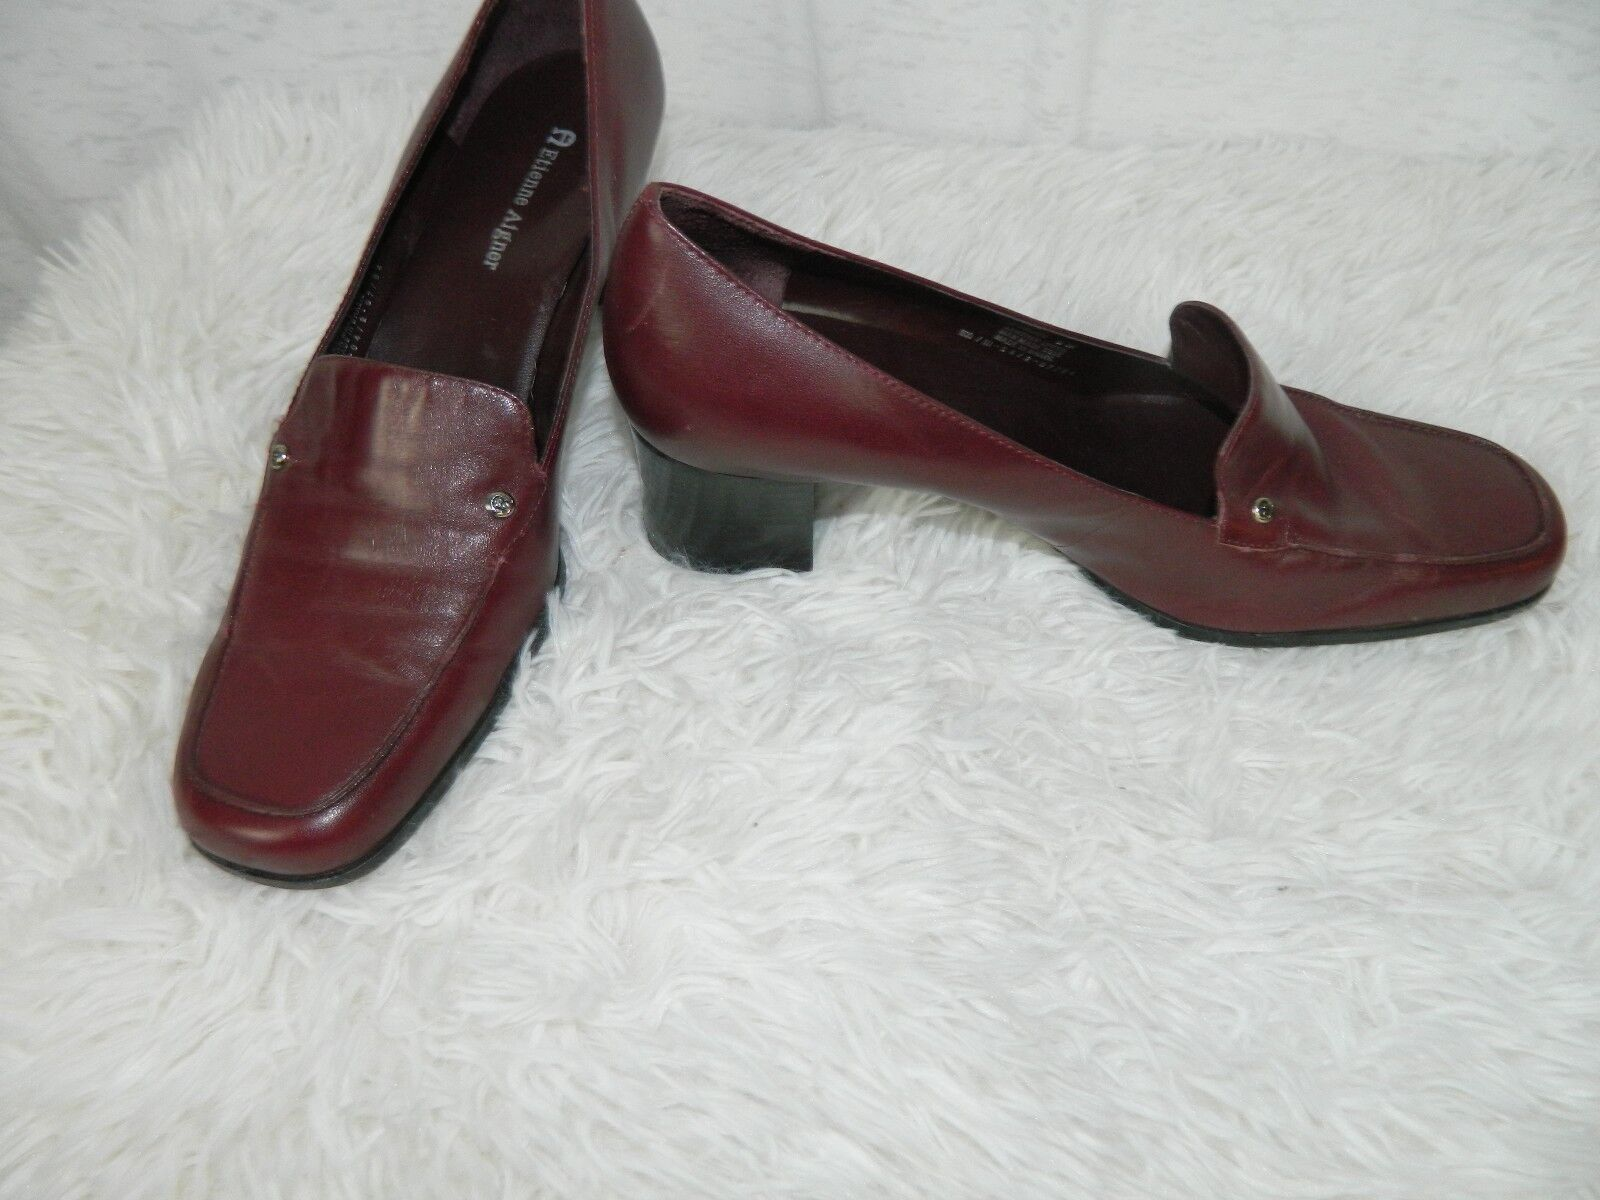 Etienne Brown Aigner Loafer Shoe Women's Brown Etienne Burgundy Leather Heel SIZE 8M e4ea54